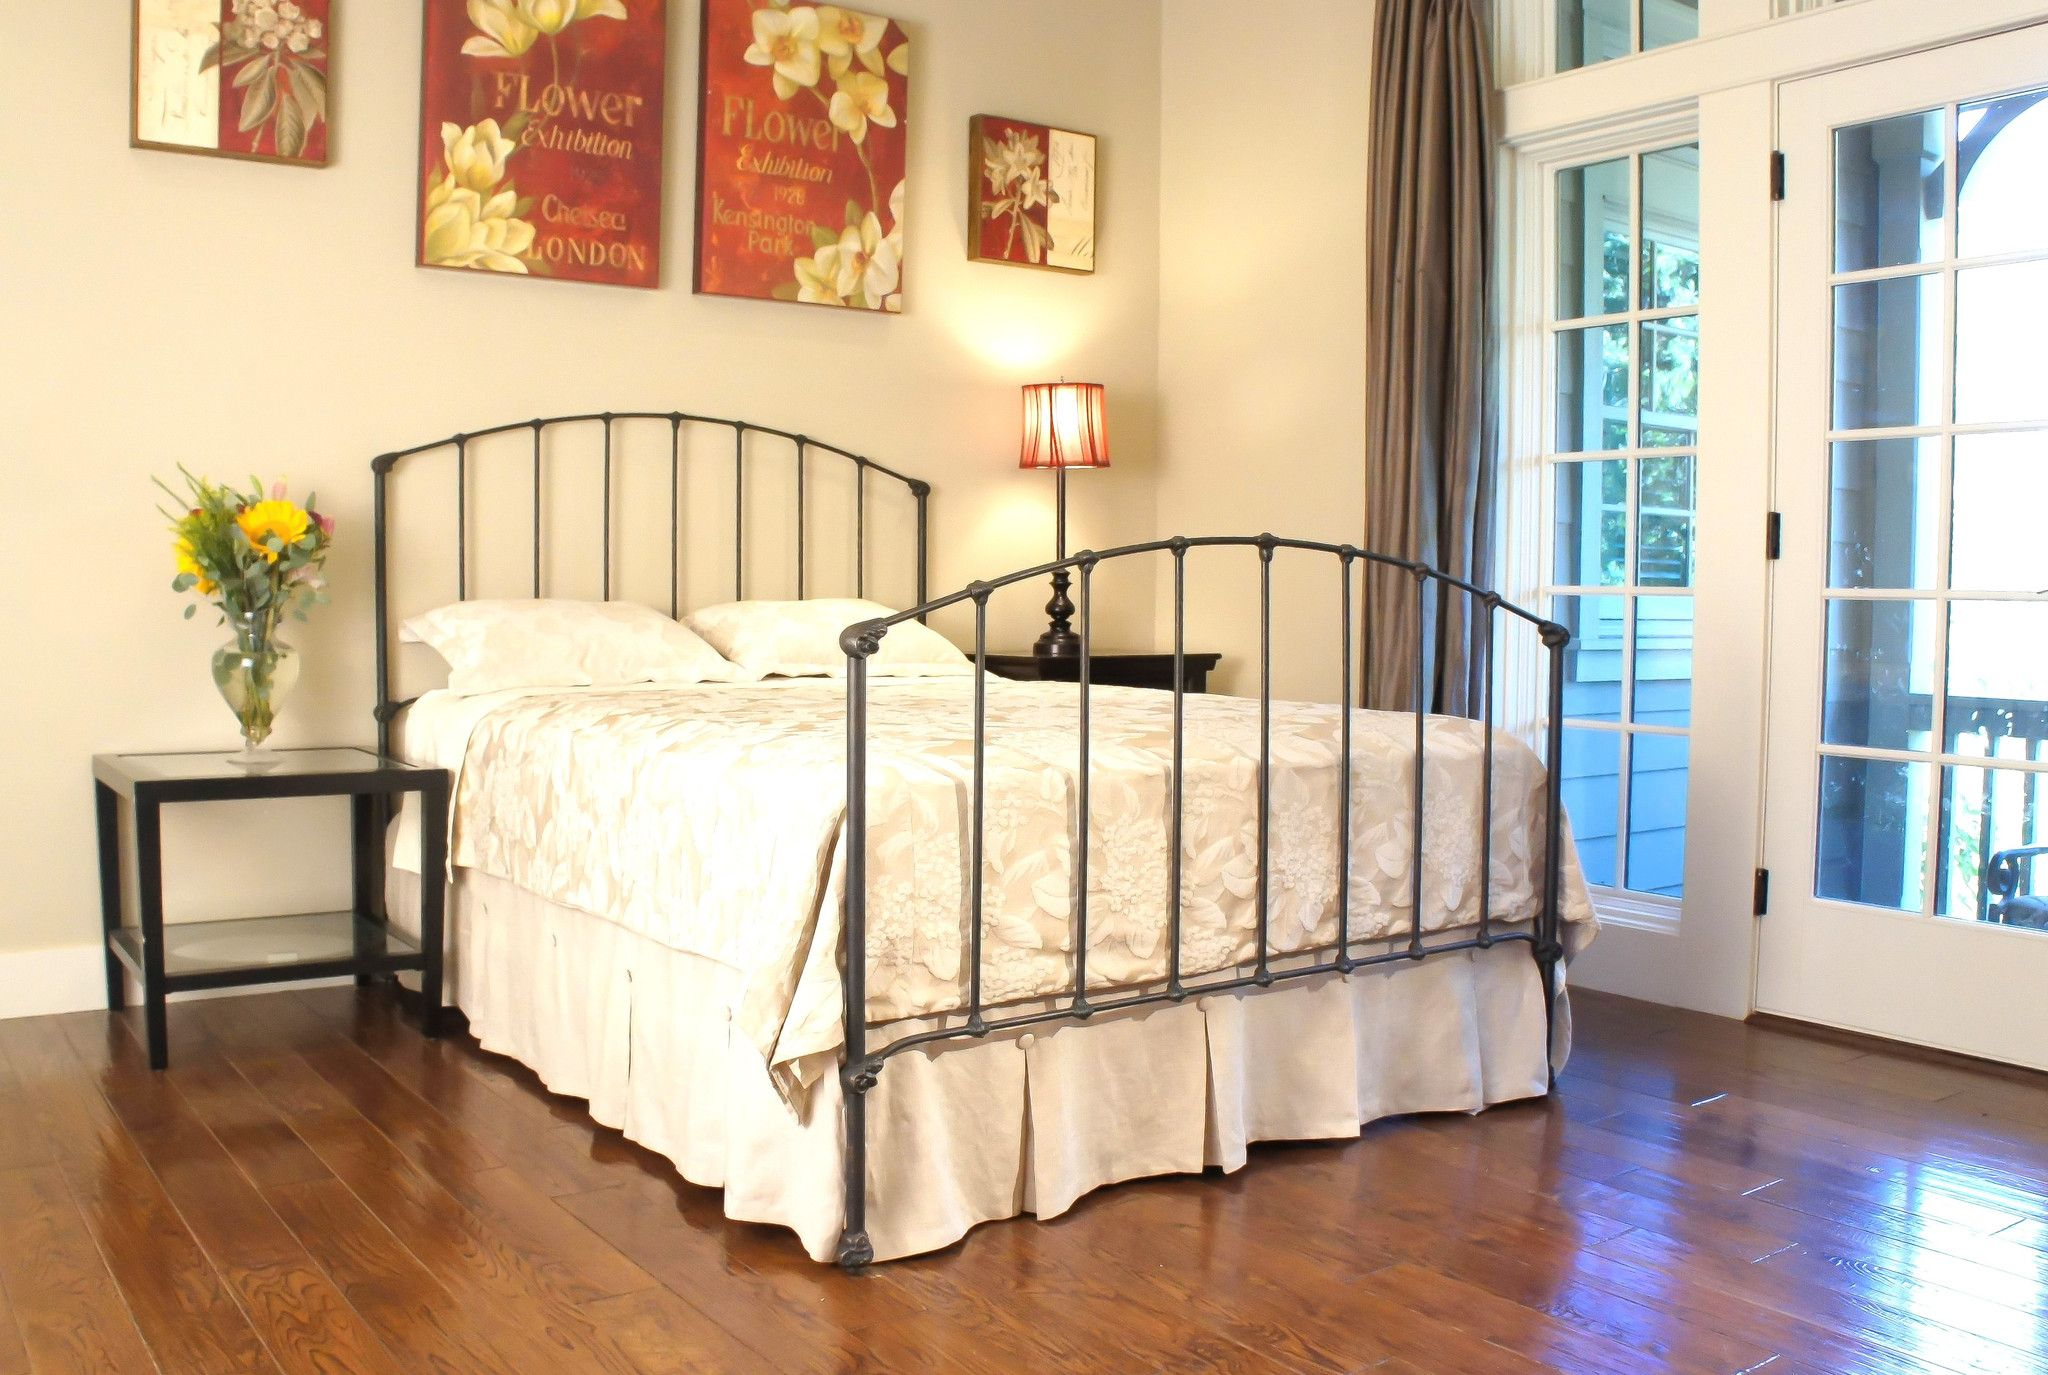 Archdale Iron Bed Bed, Metal beds, Panel bed